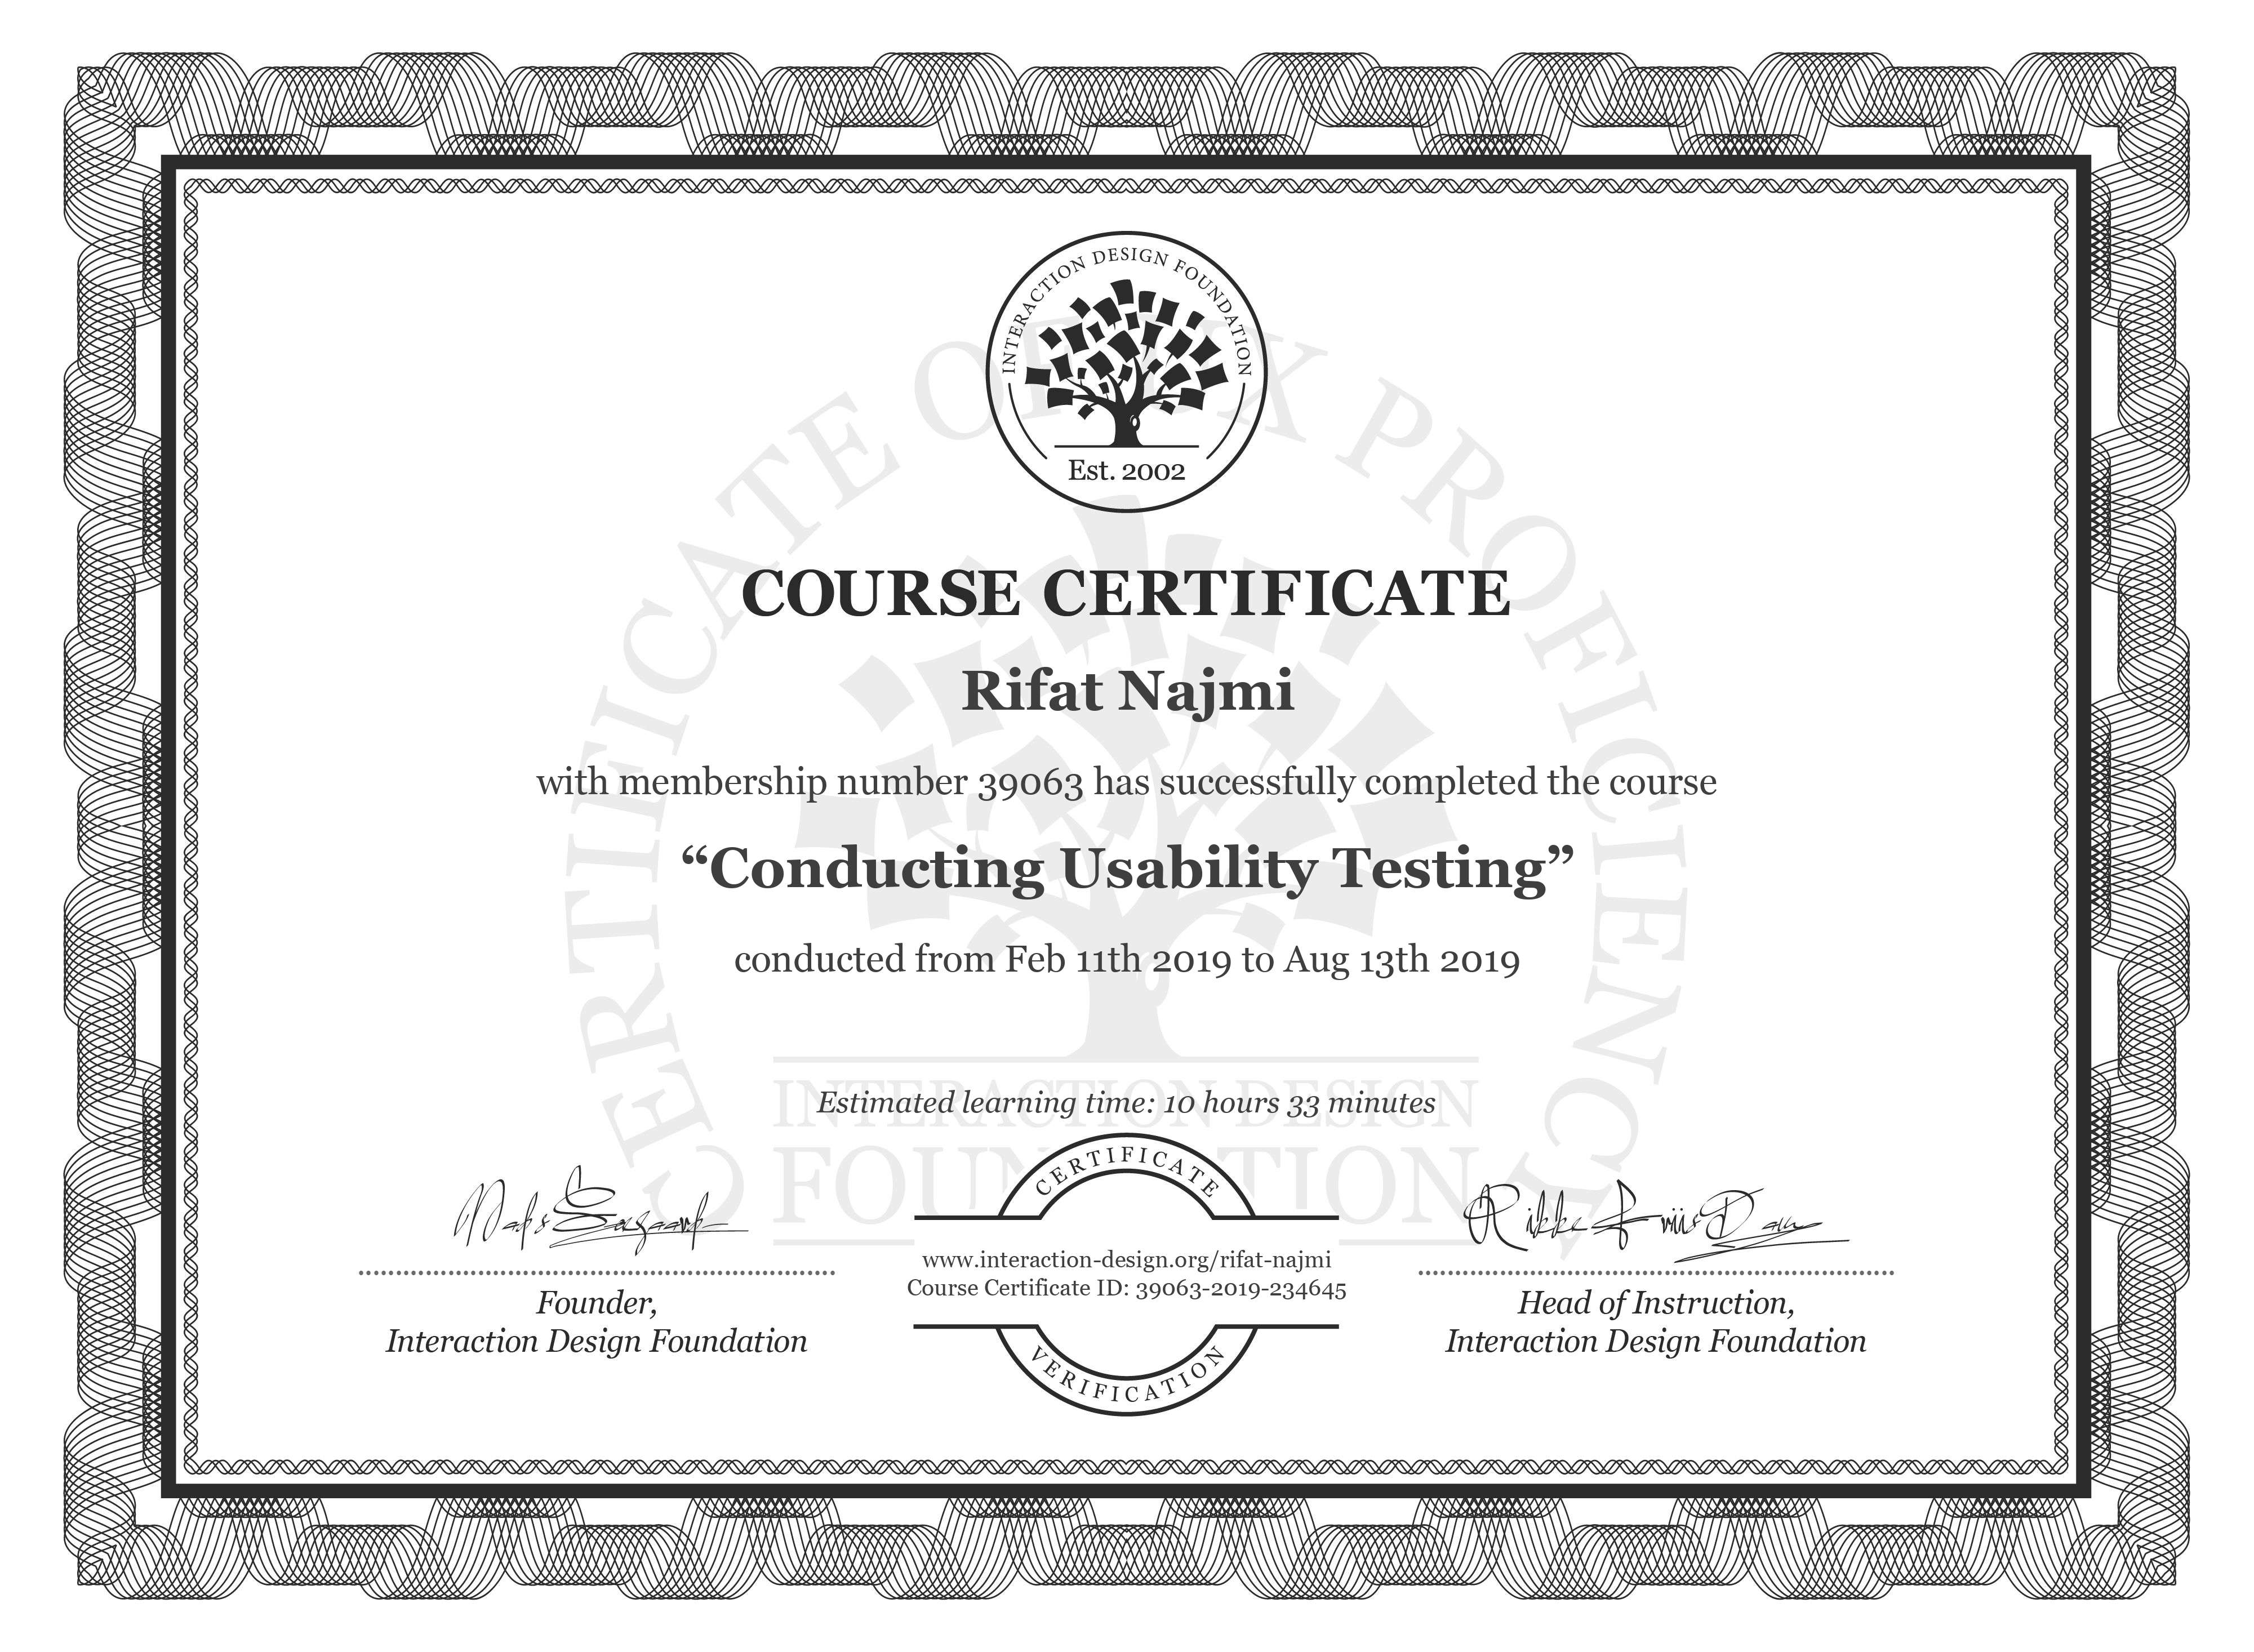 Rifat Najmi's Course Certificate: Conducting Usability Testing